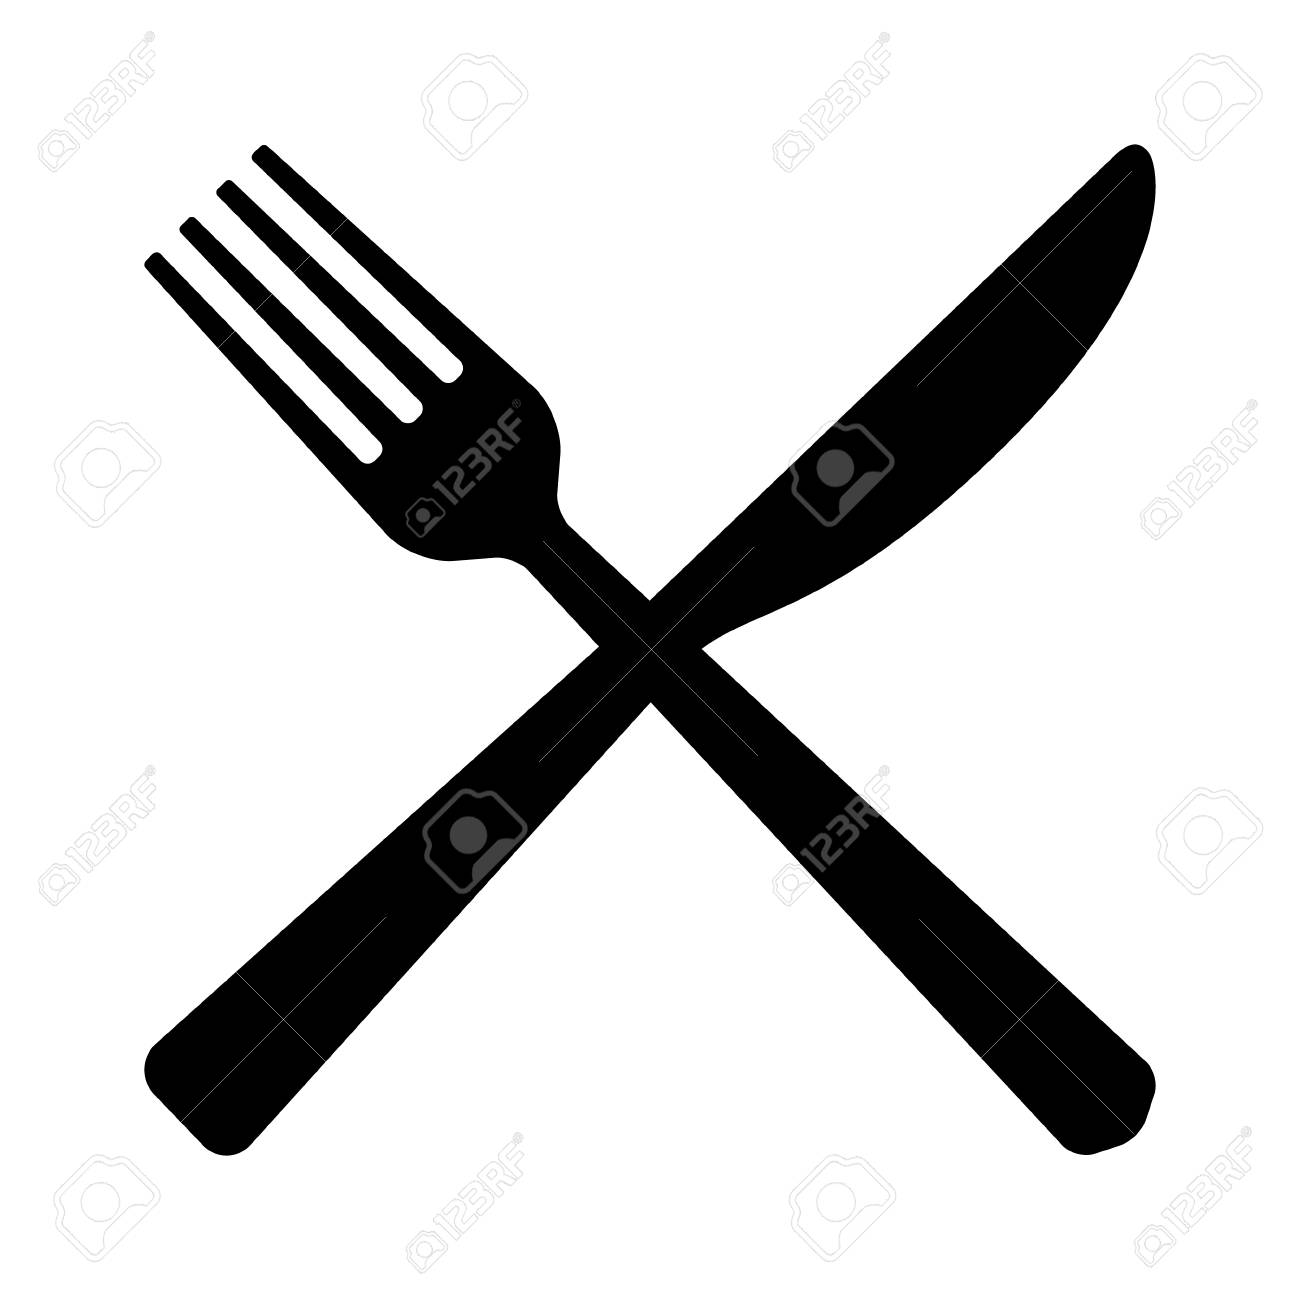 Fork and butter knife eating utensils in crossed position flat...